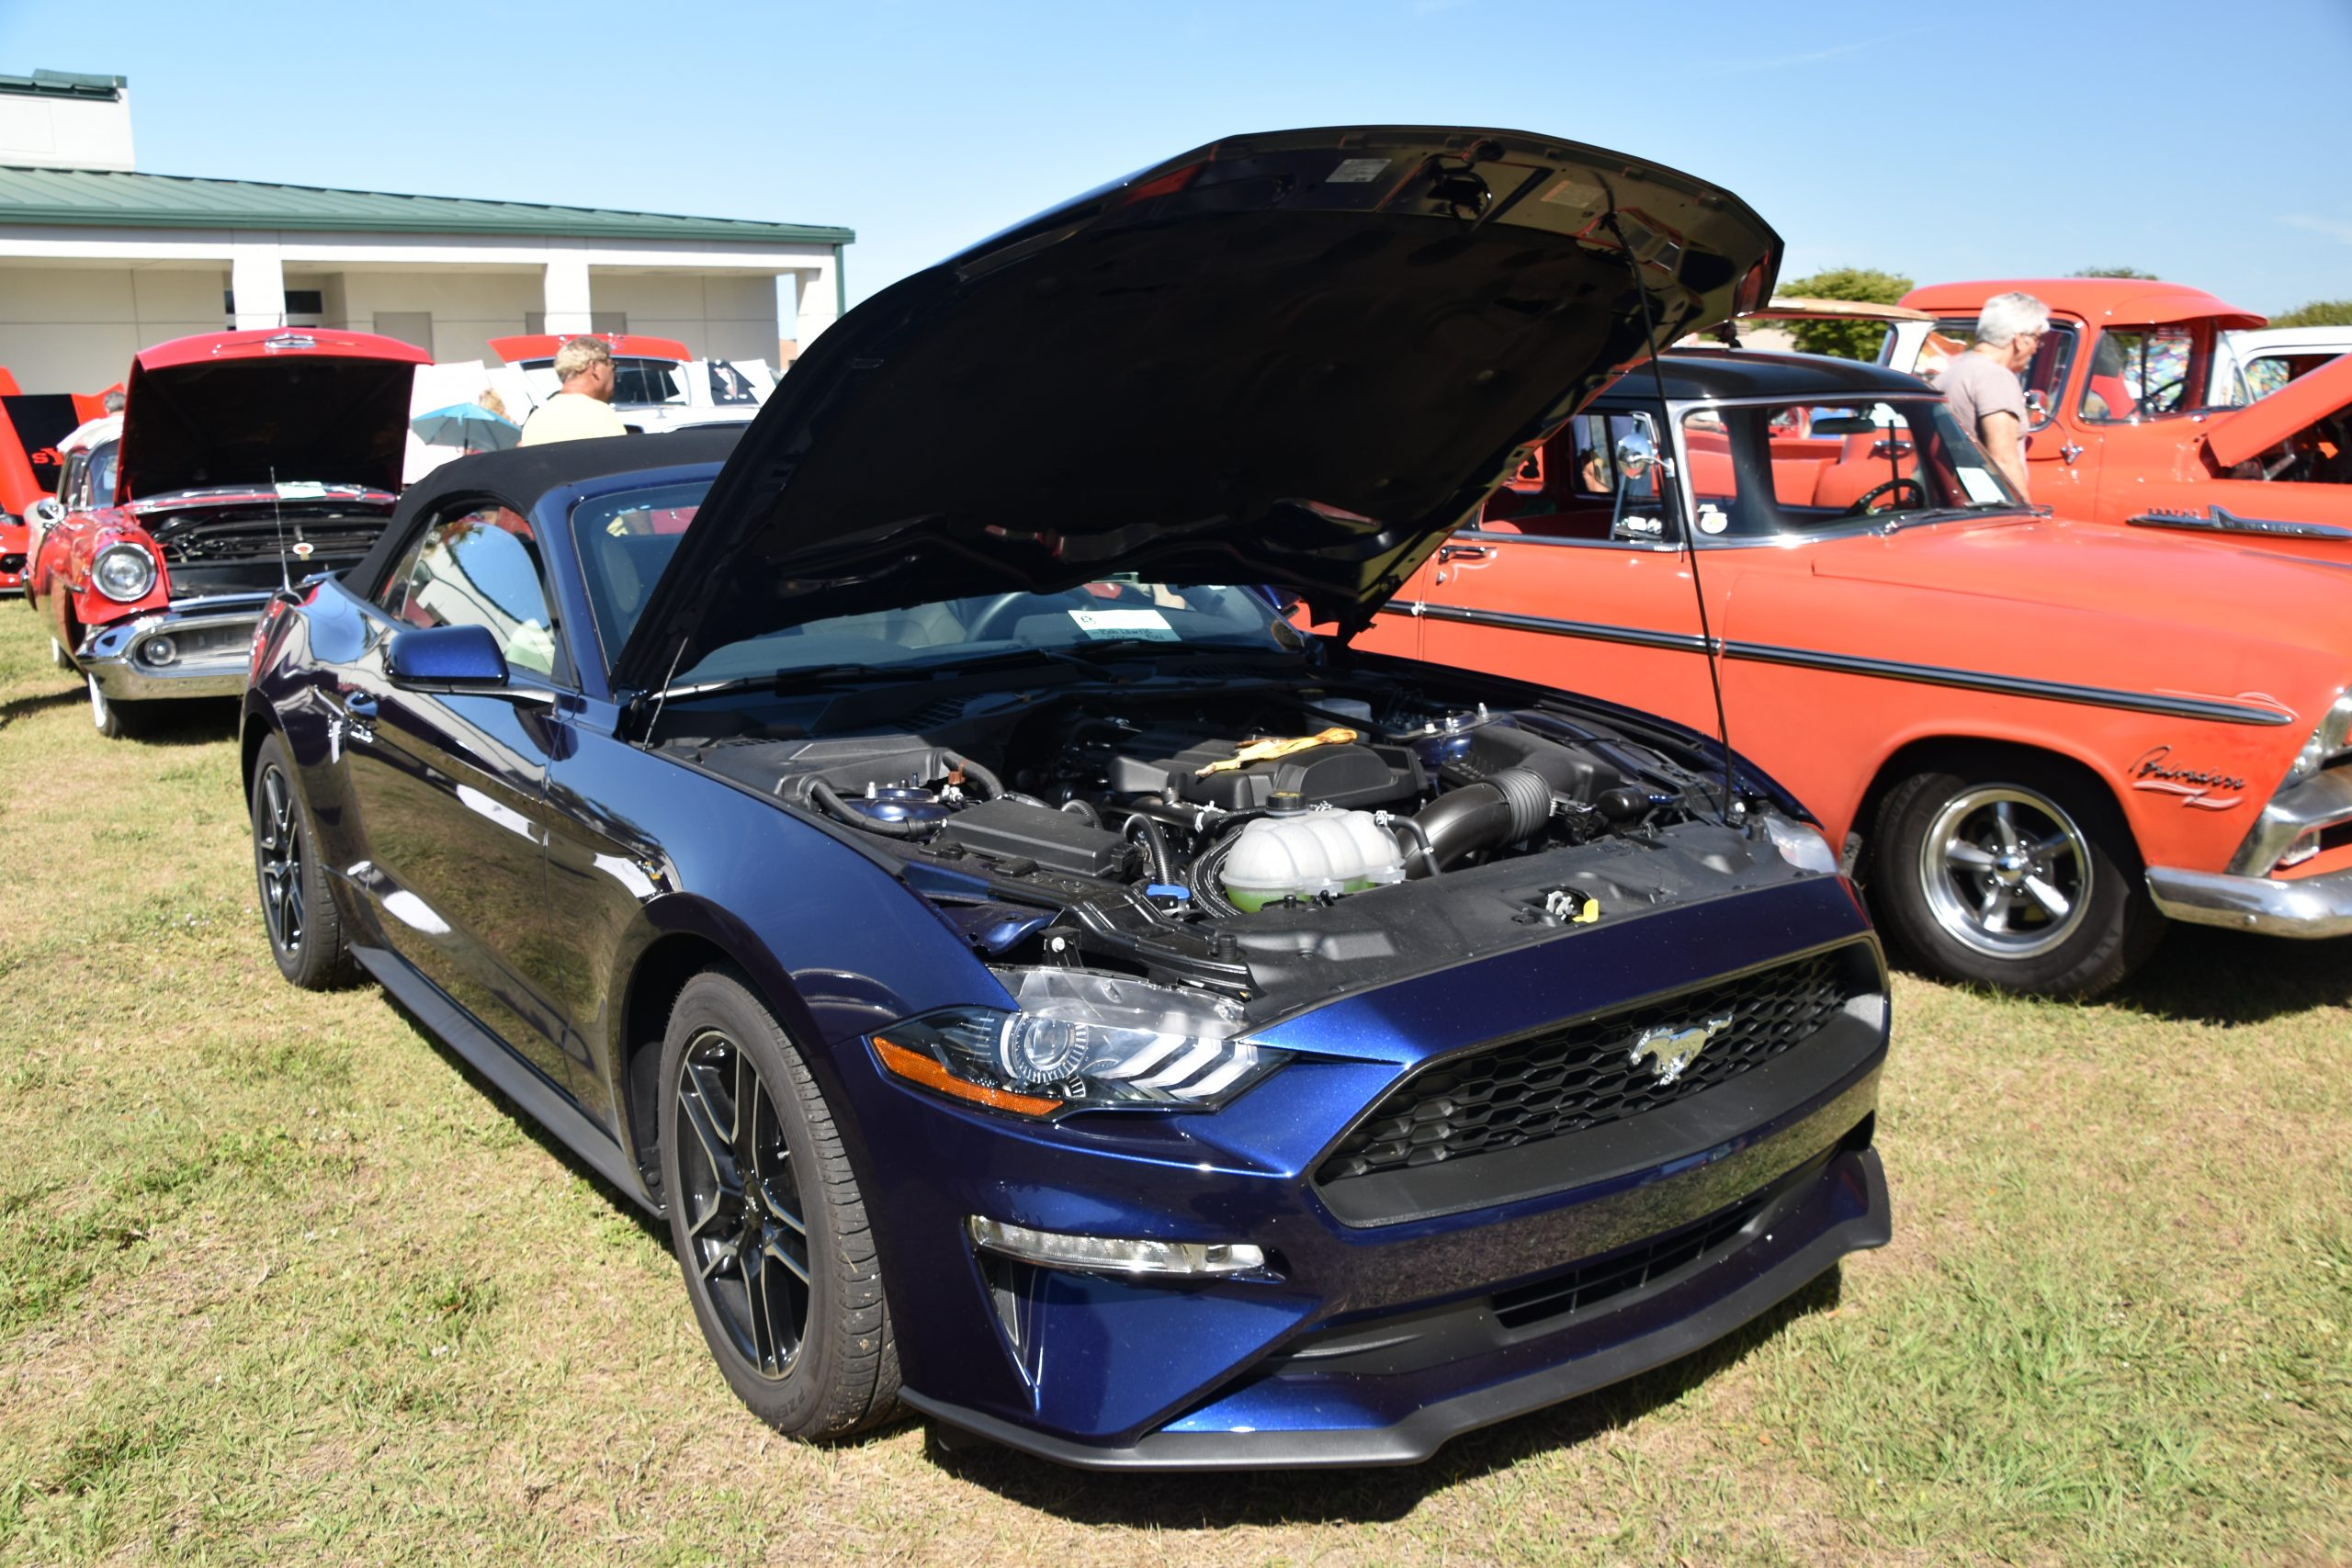 Blue Mustang convertible with hood up